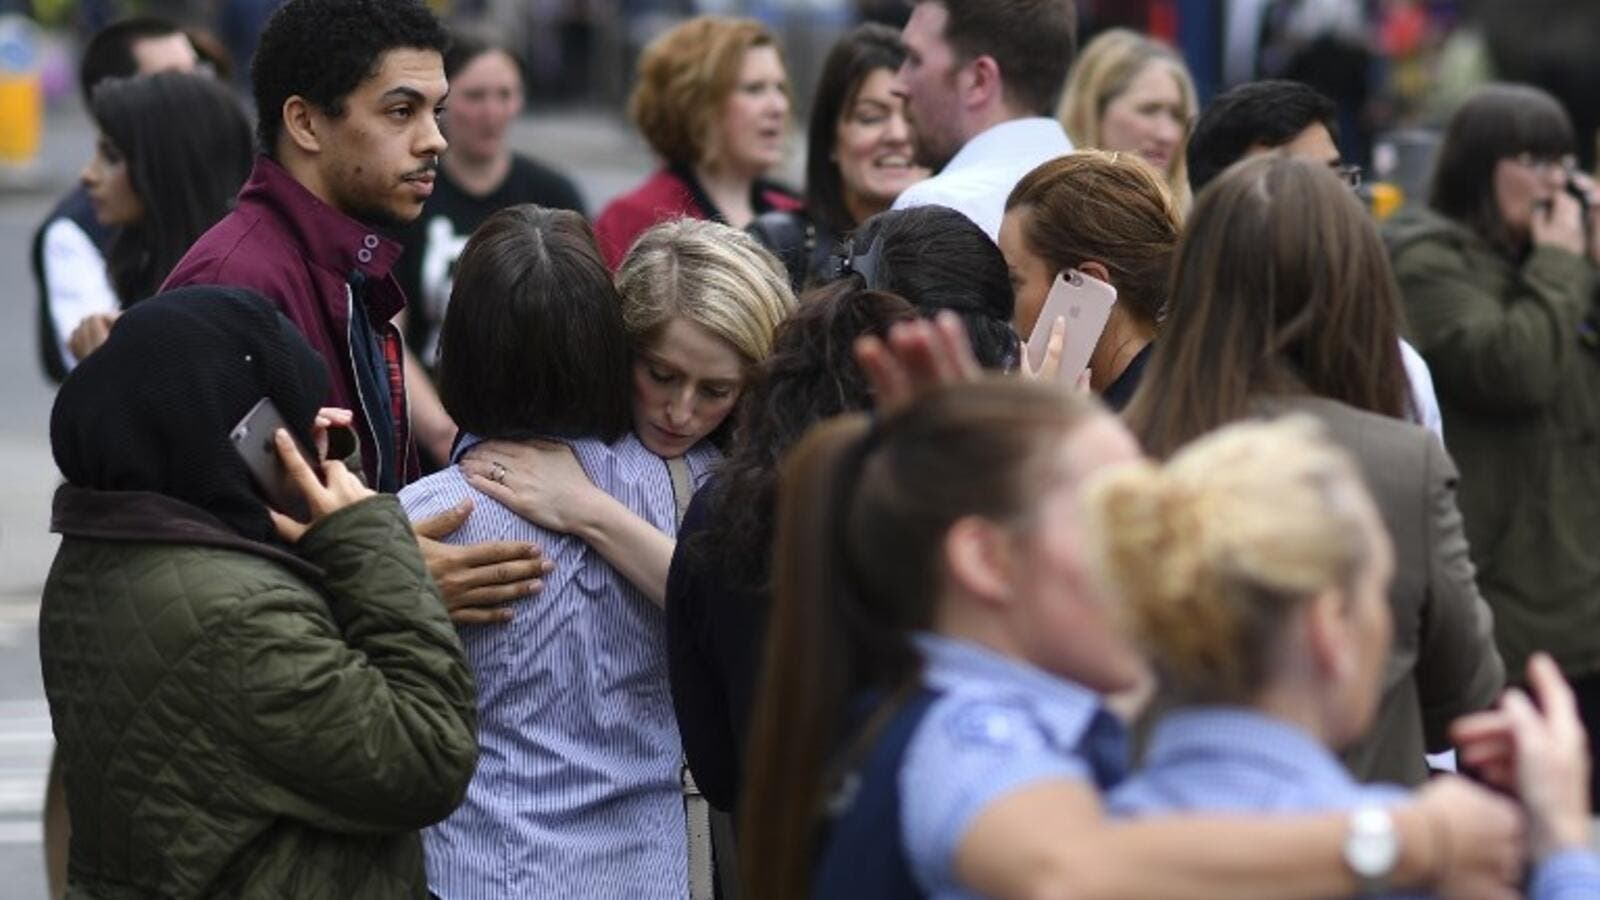 Retail staff hug each other after being evacuated from the Arndale Centre shopping mall in Manchester, northwest England on May 23, 2017 following a security alert the day after a deadly terror attack at the Manchester Arena. (AFP/Ben Stansall)